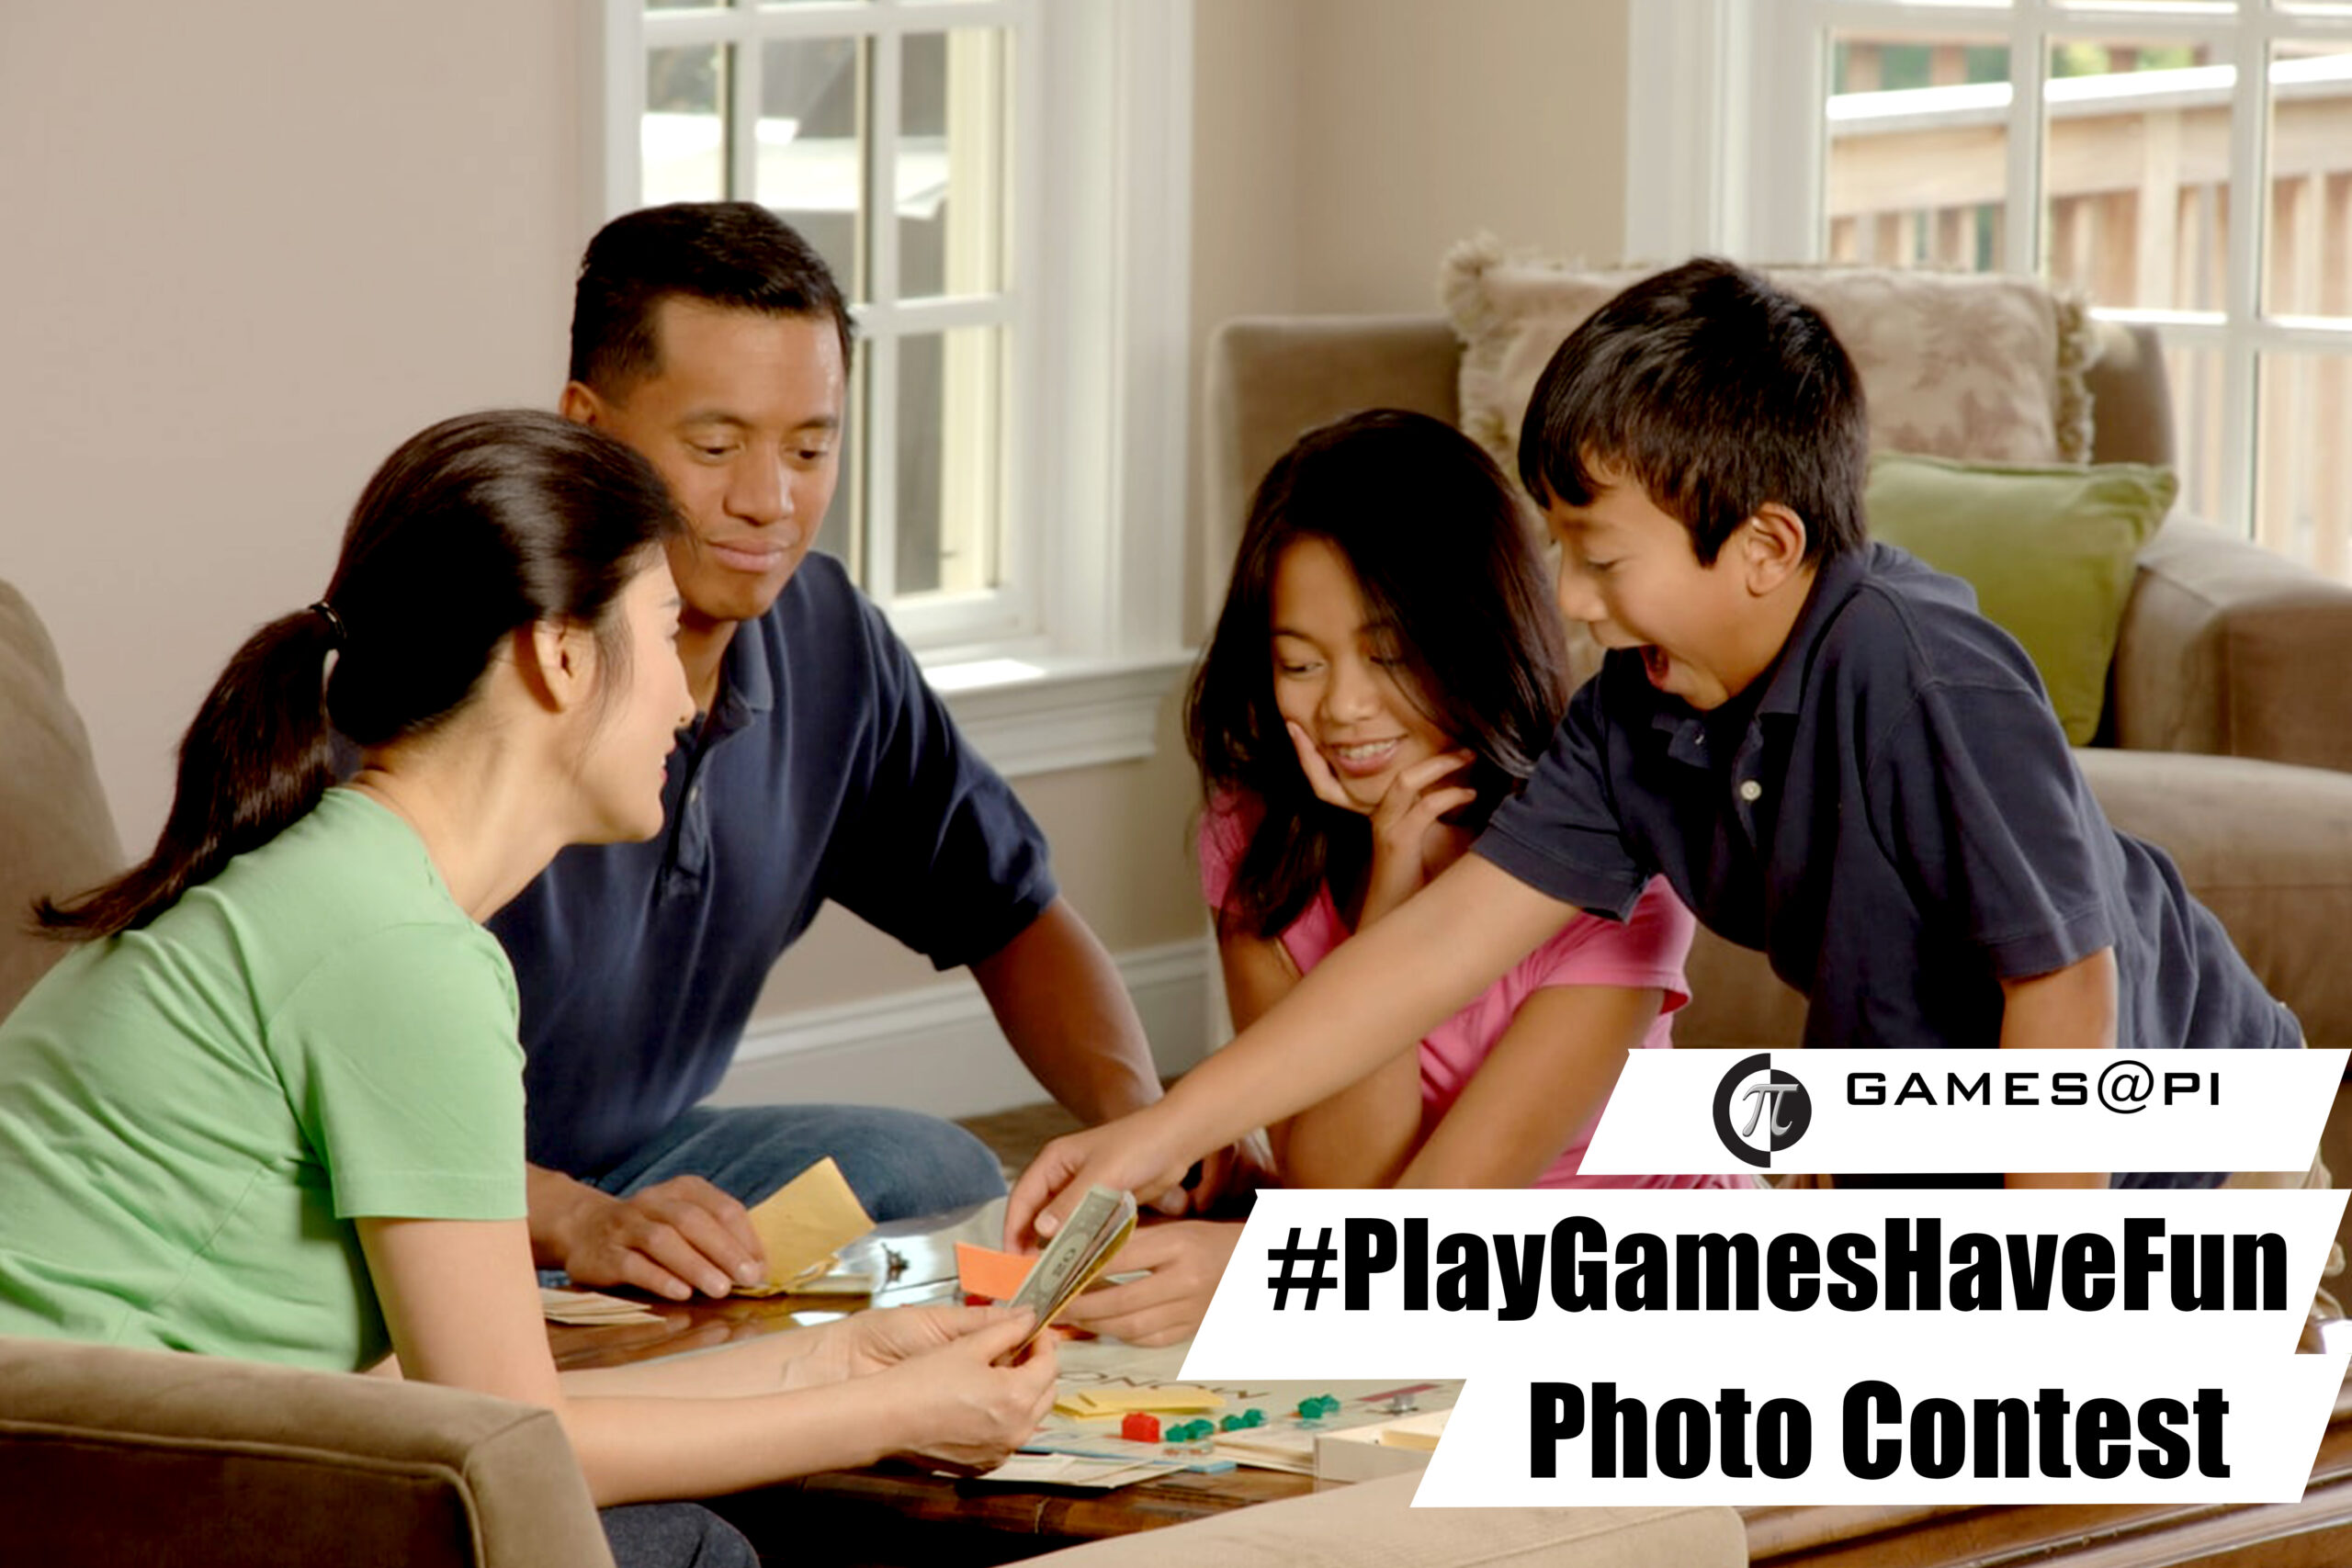 games at pi play games have fun photo contest